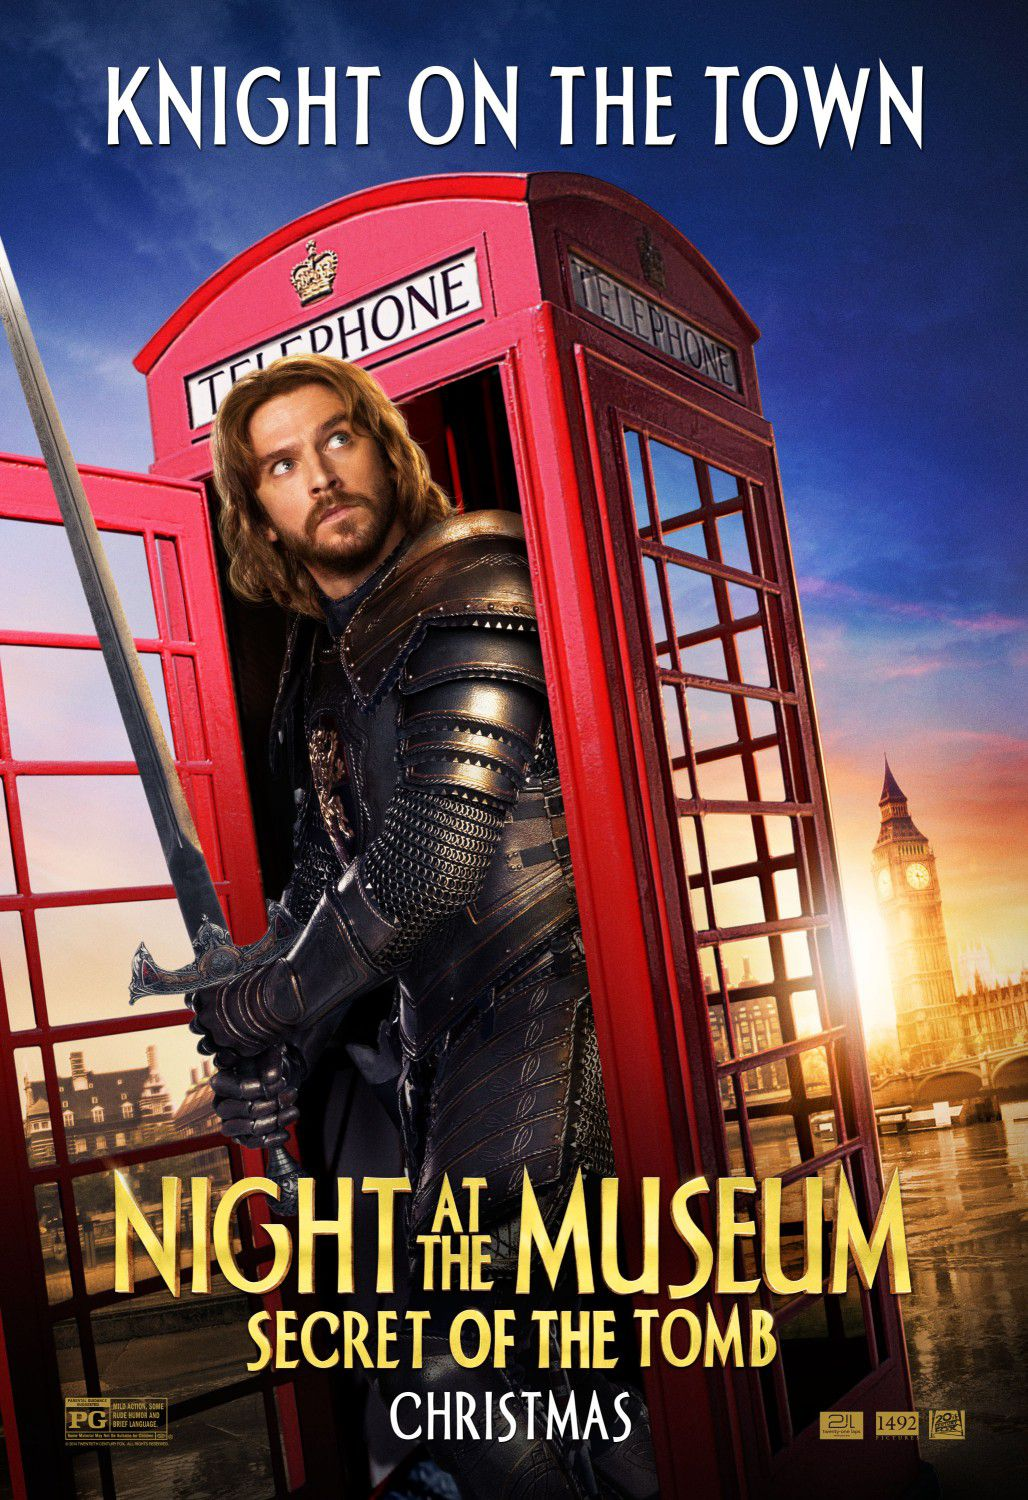 Una Notte al Museo 3 - Night at the Museum 3 - Secret of the Tomb - poster - Knight on the Town - Dan Stevens